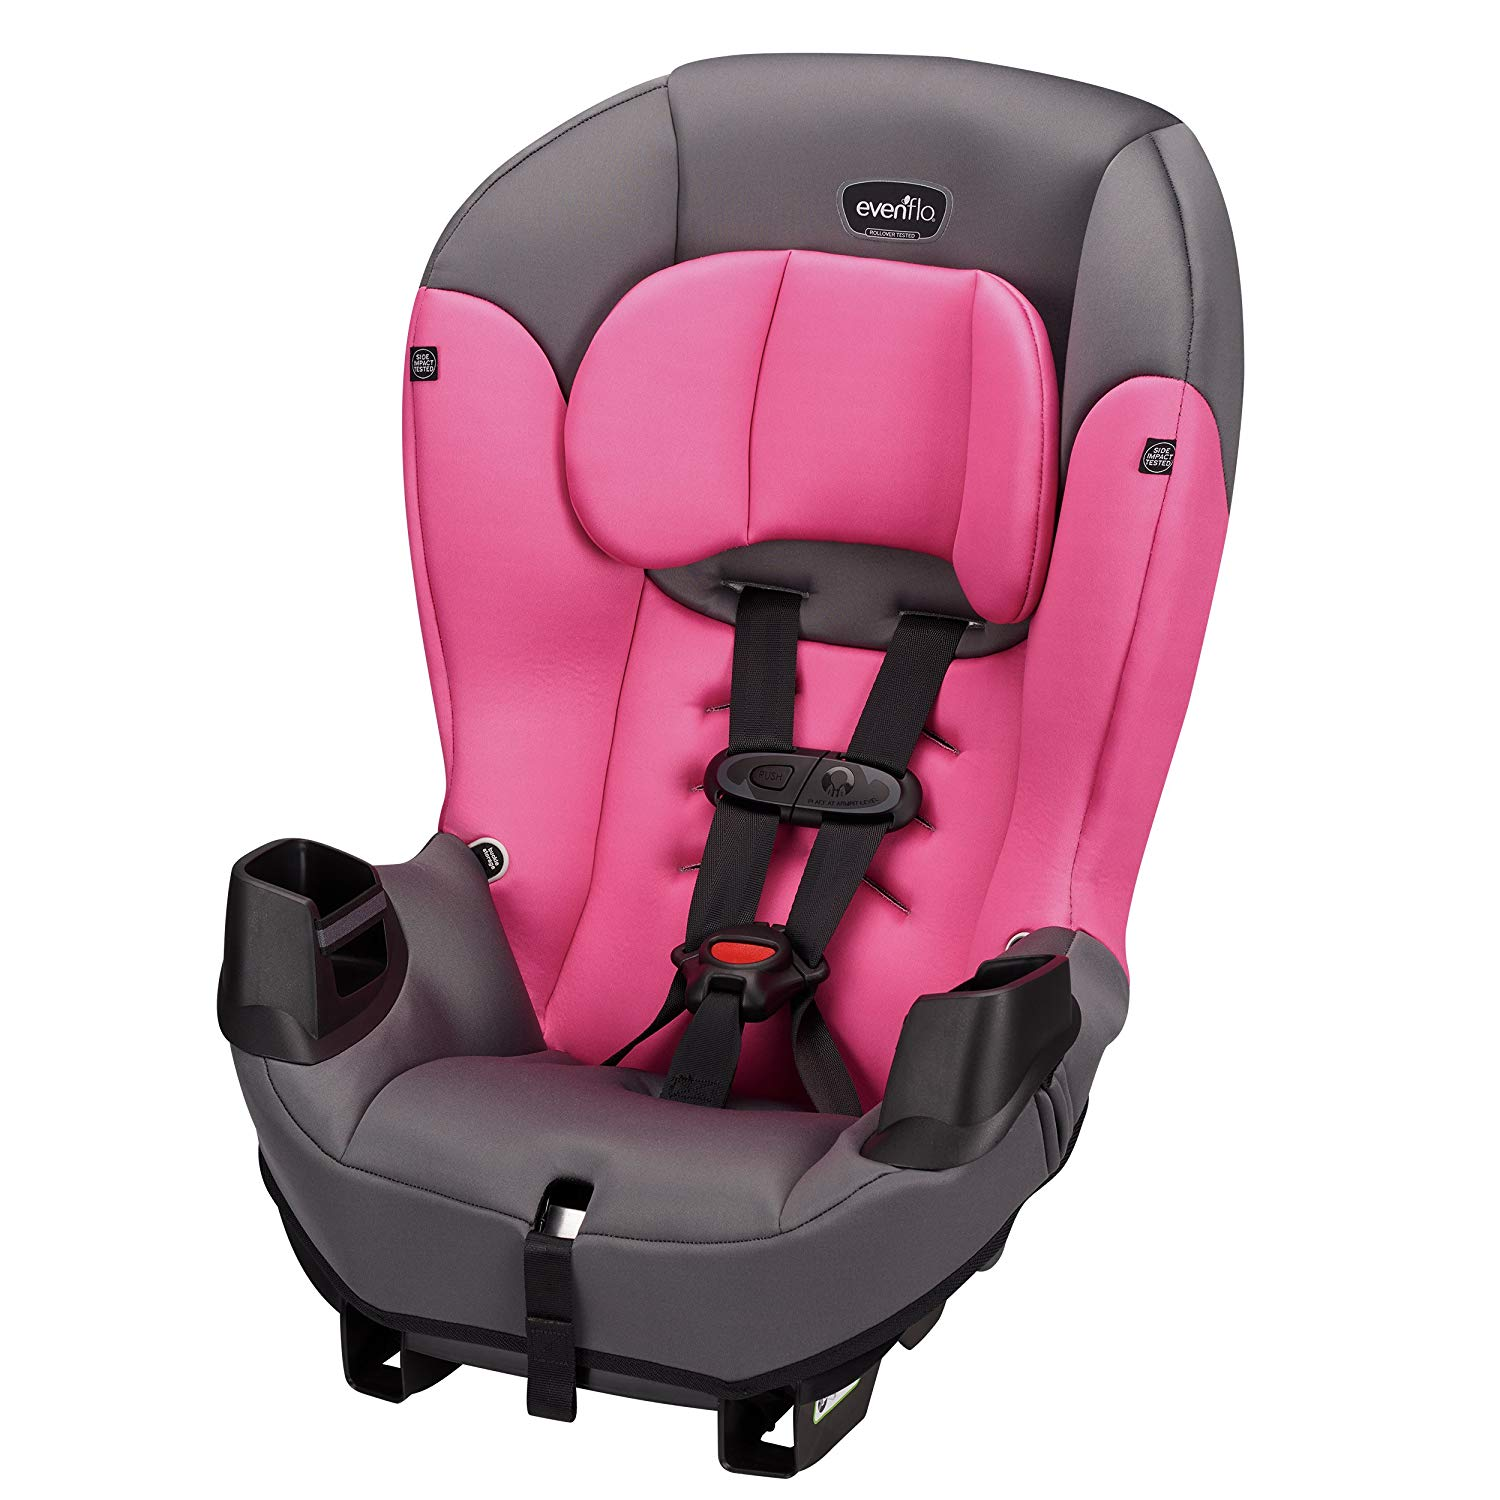 Evenflo Car Seat Pink